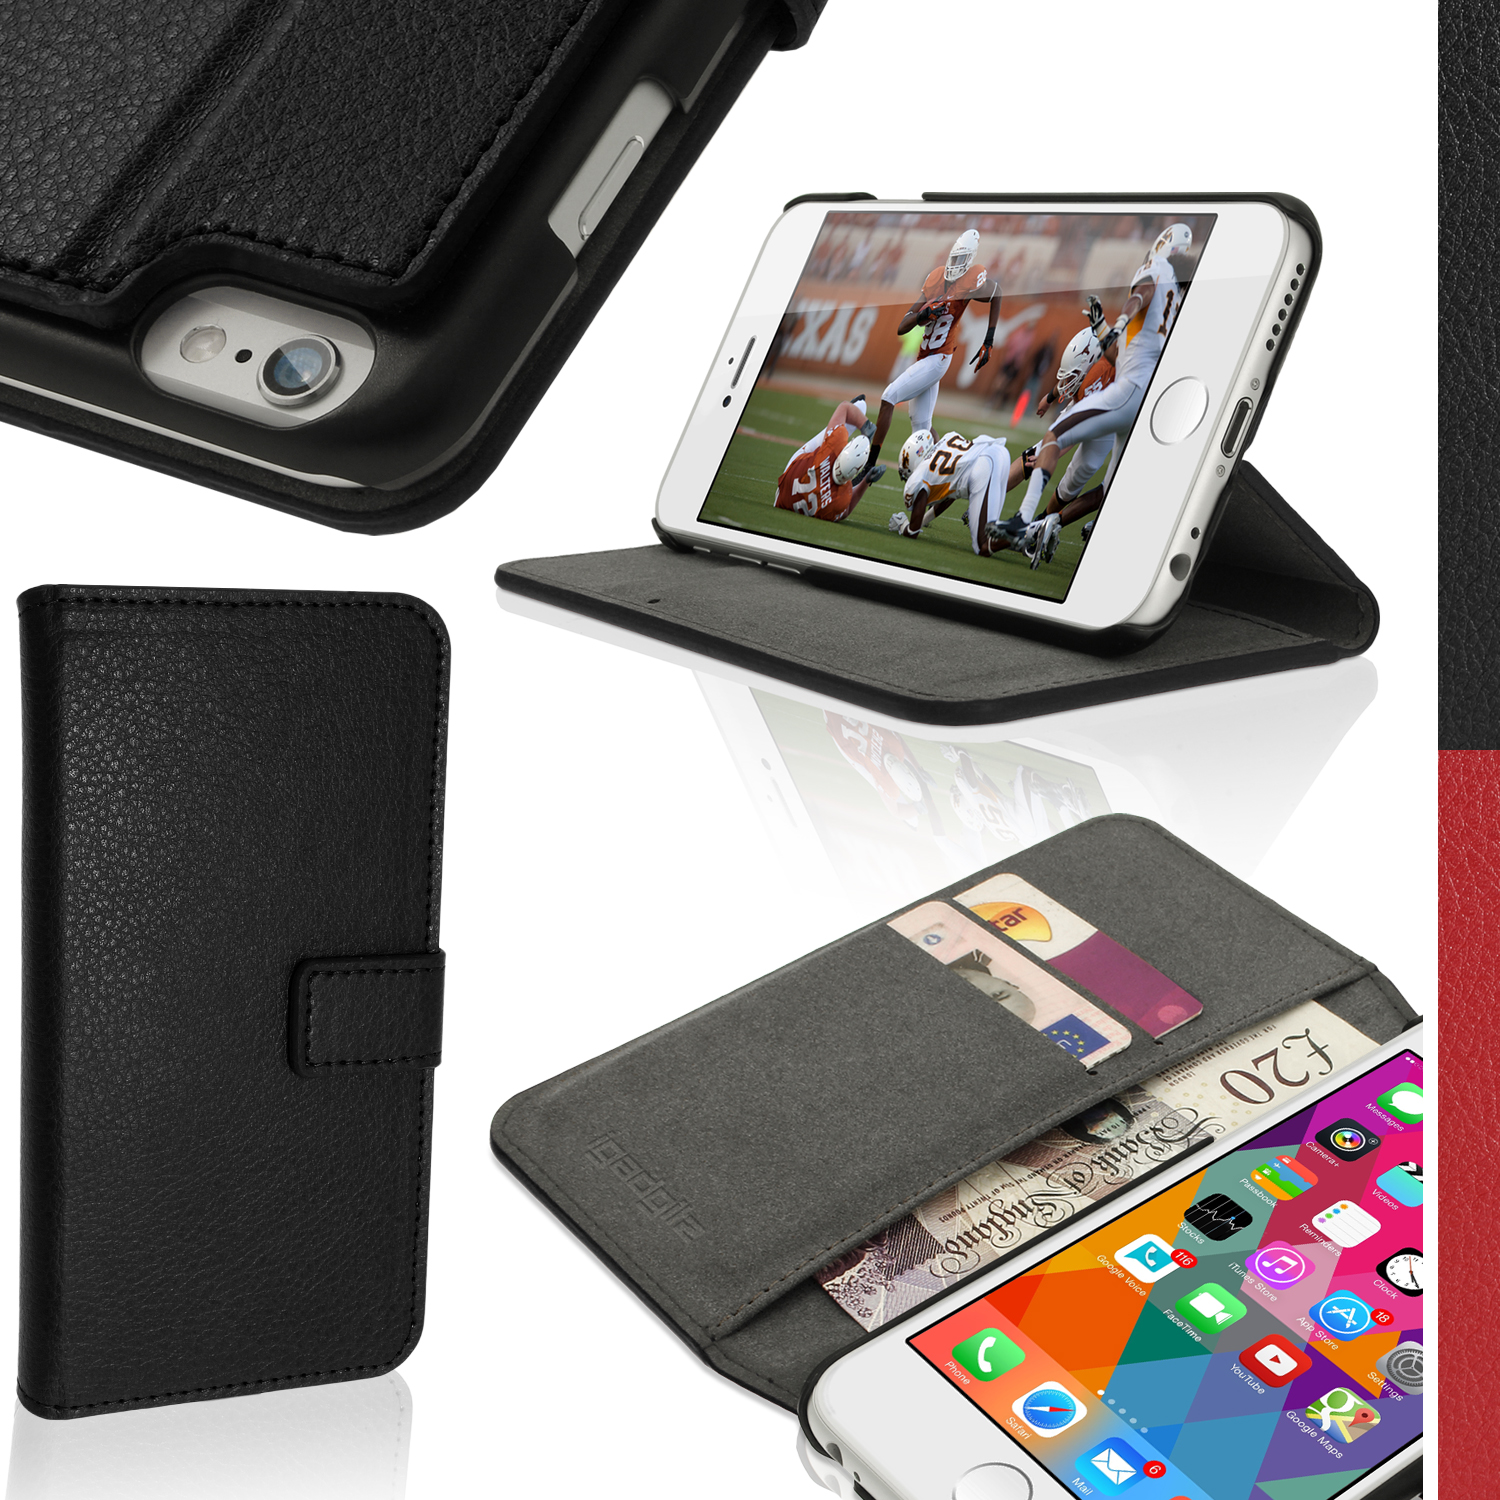 "iGadgitz Black PU Leather Case for Apple iPhone 6 & 6S PLUS 5.5"" with Card Slots, Stand, Magnetic Closure + Screen Prot"